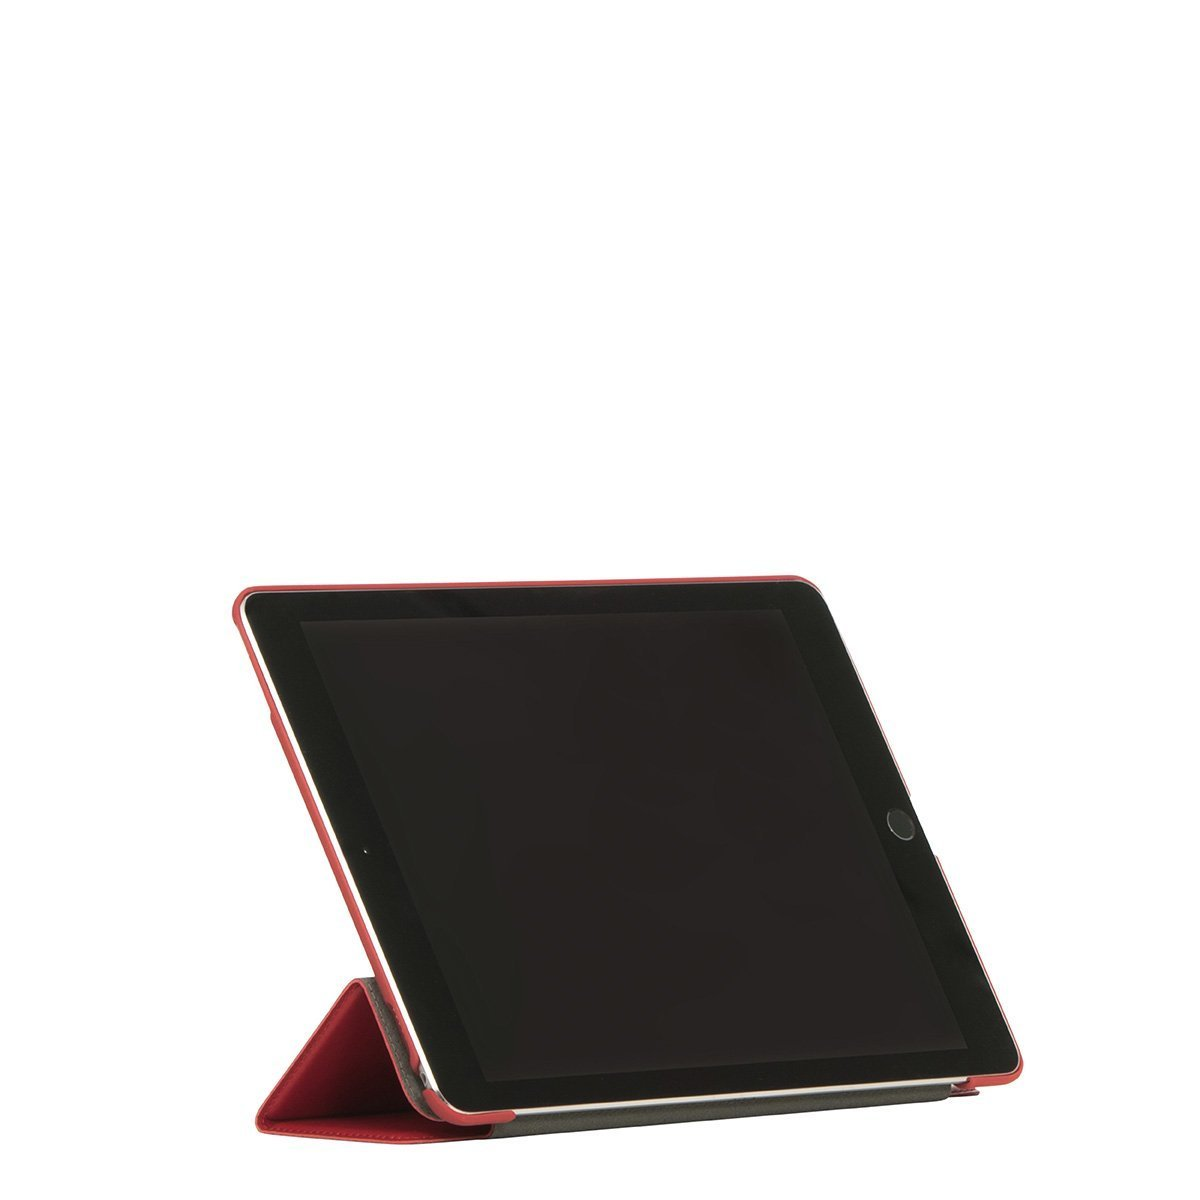 "Leather Tri-fold iPad Folio (2015) - 9.7"" iPad Pro (2015 release) - 9.7"" - Fold  